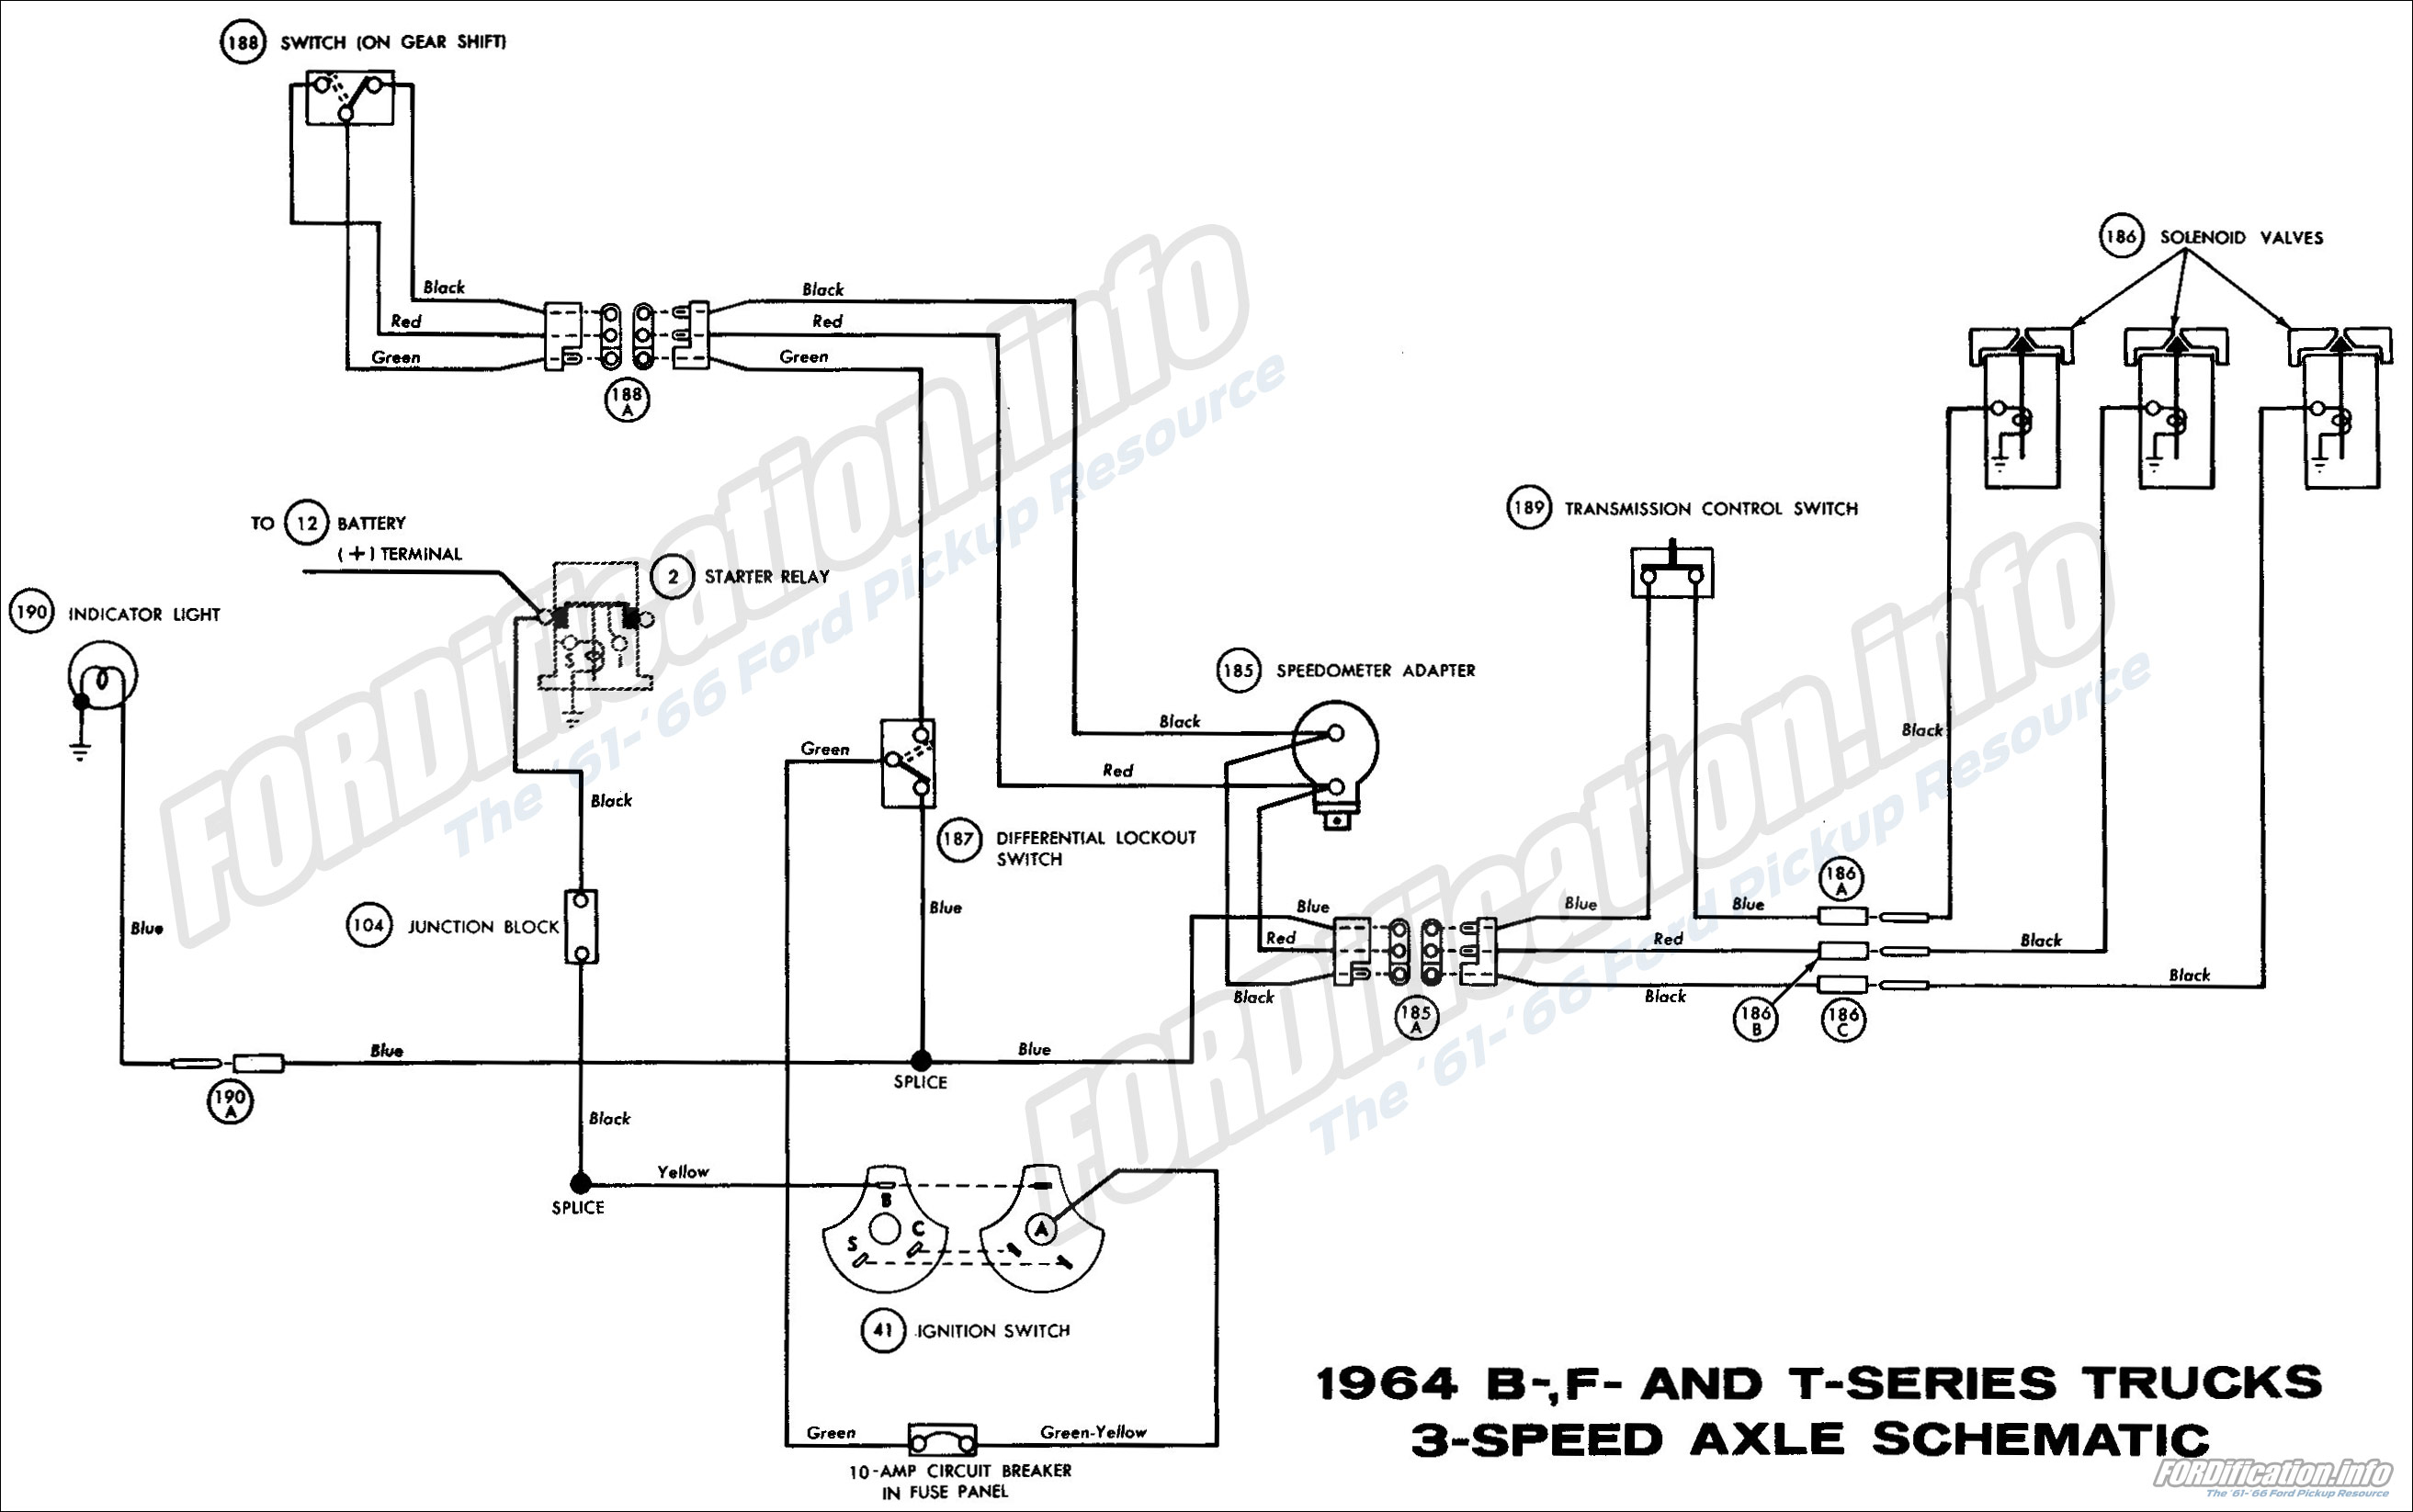 1964_19 eaton wiring diagram haldex abs wiring diagram \u2022 wiring diagrams fordification wiring diagram at virtualis.co